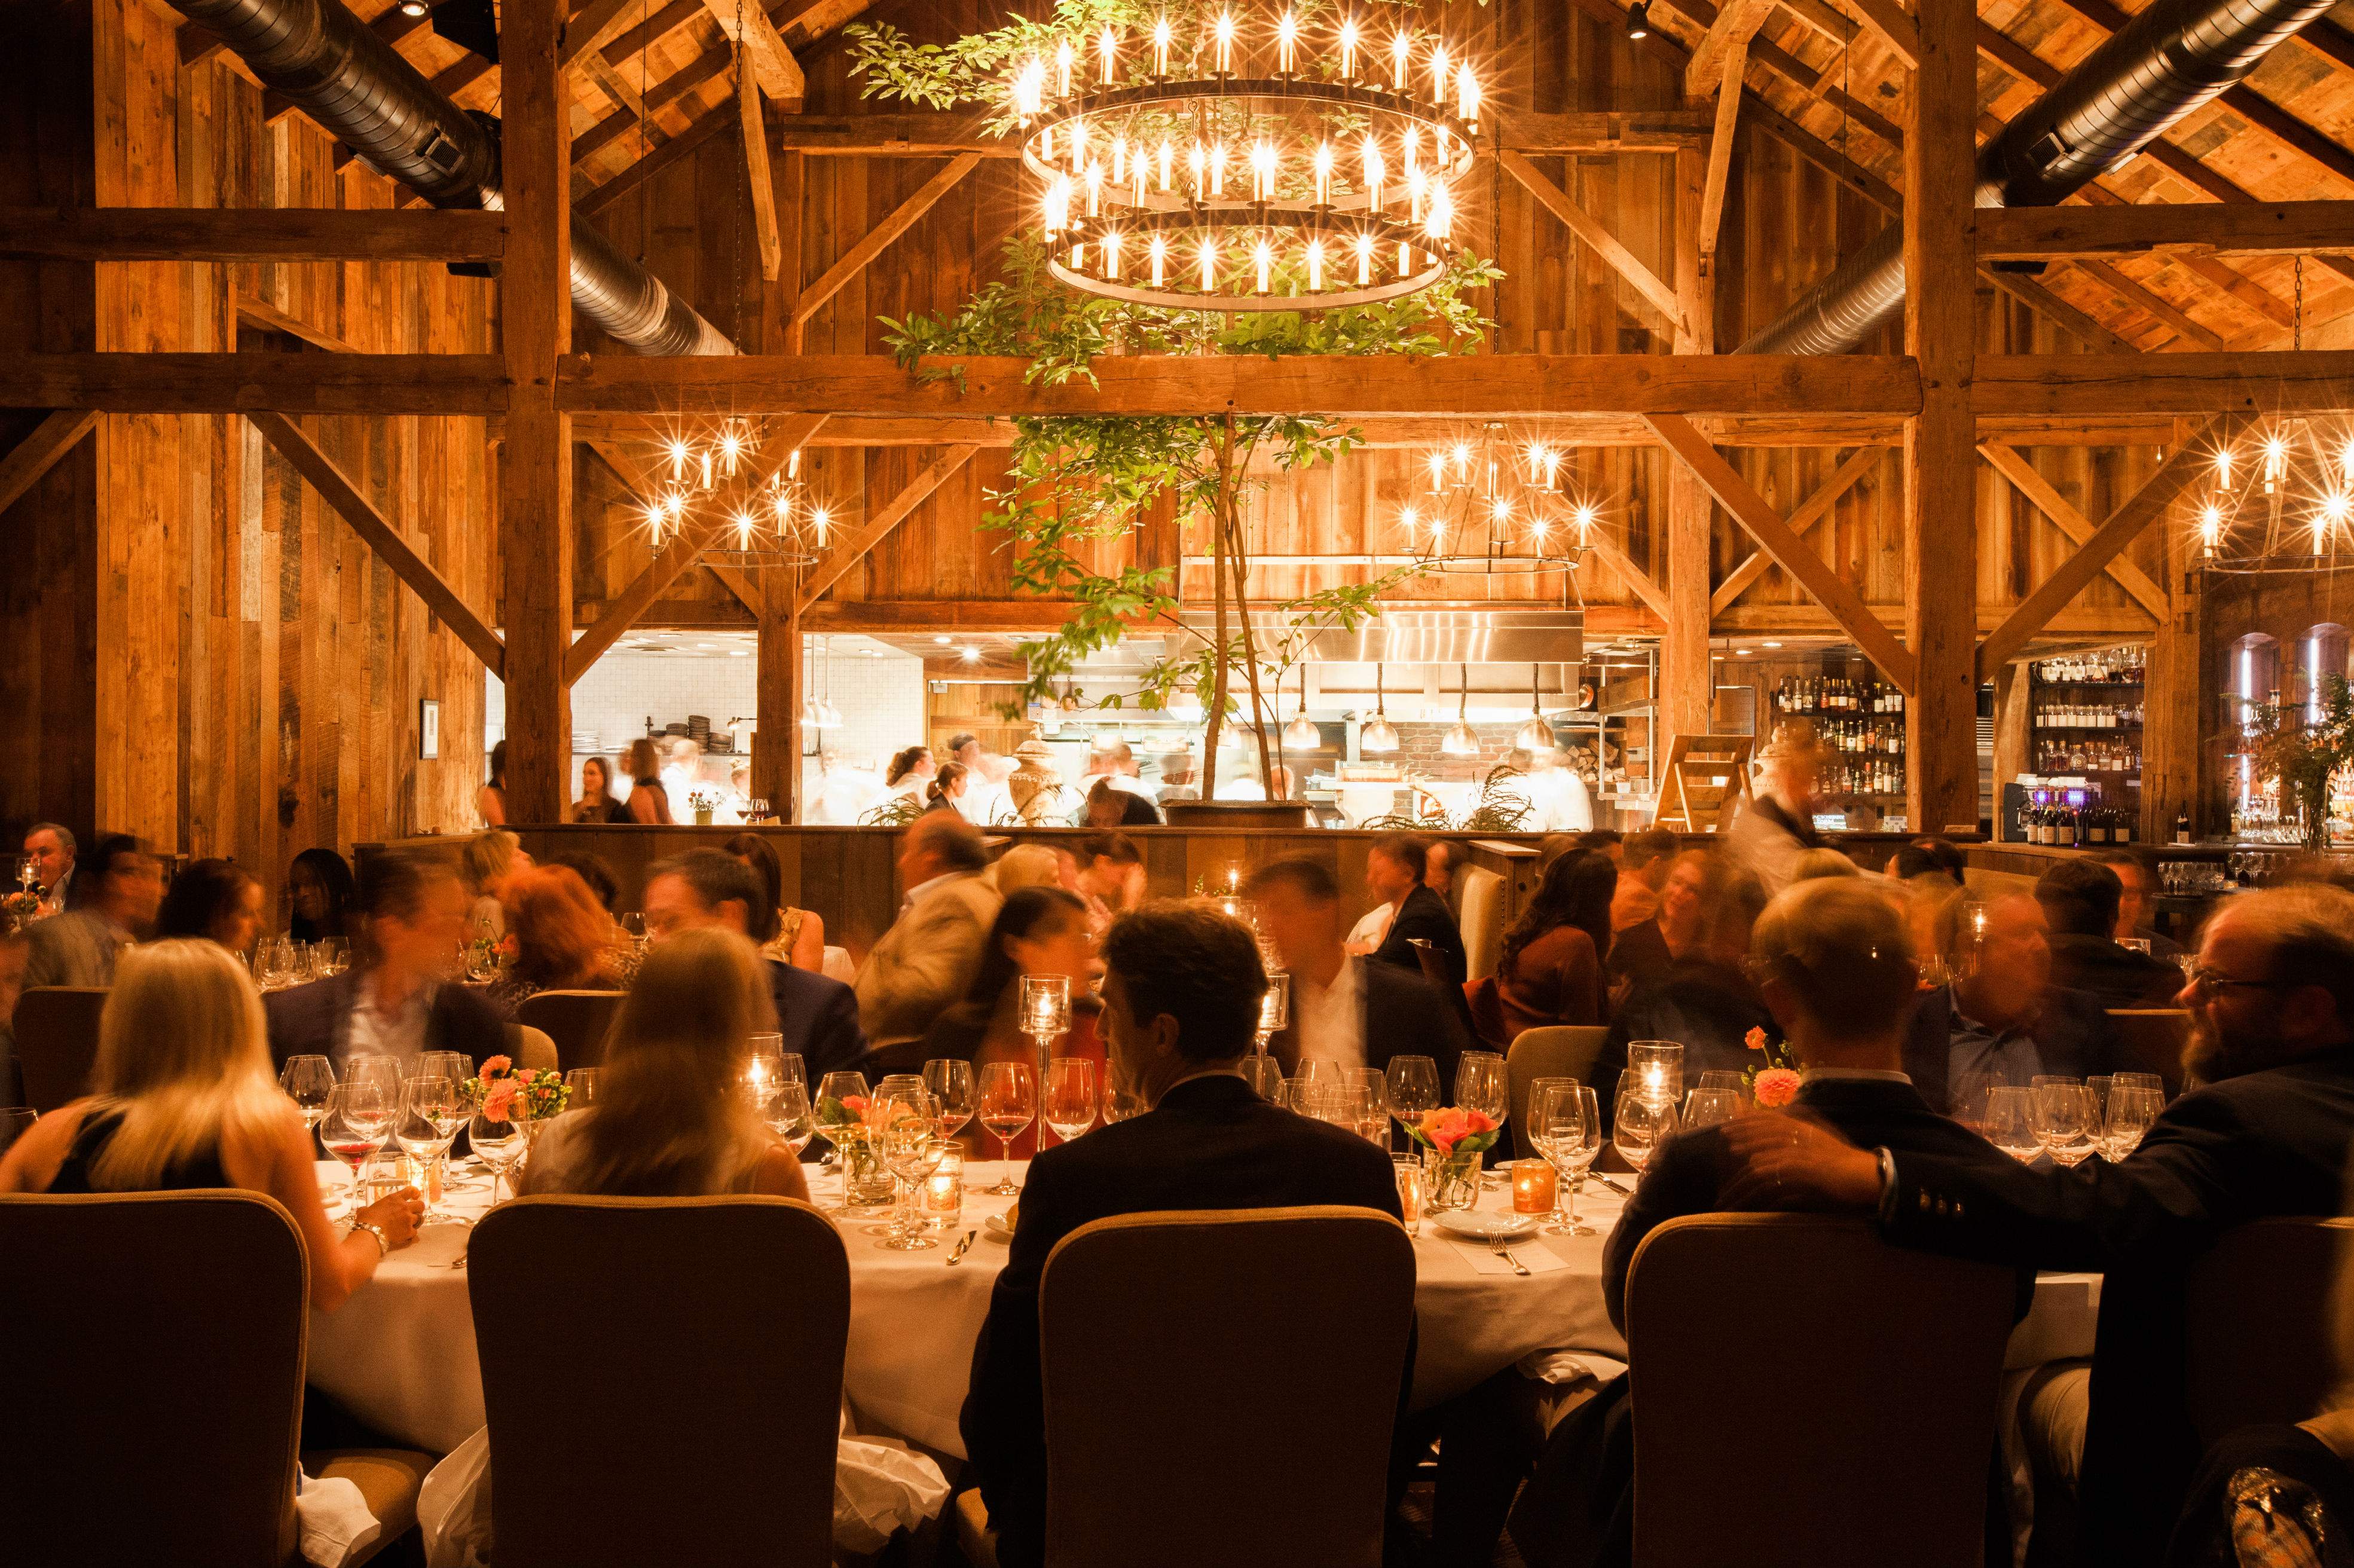 The Best Farm To Table Restaurants To Visit In The U S